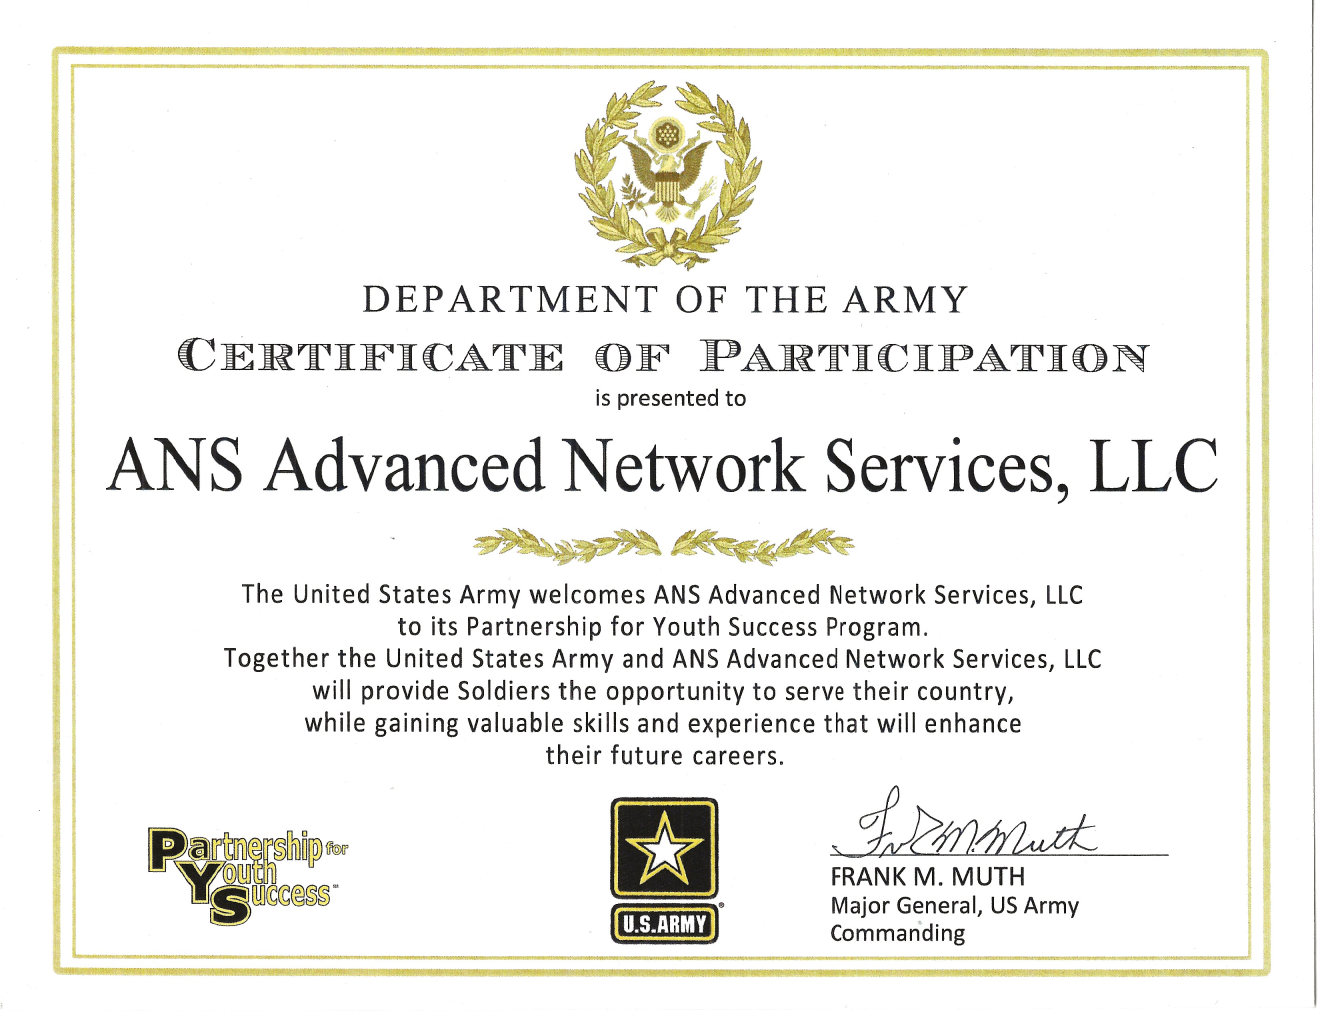 ANS Advanced Network Services, LLC Certificate (Muth)